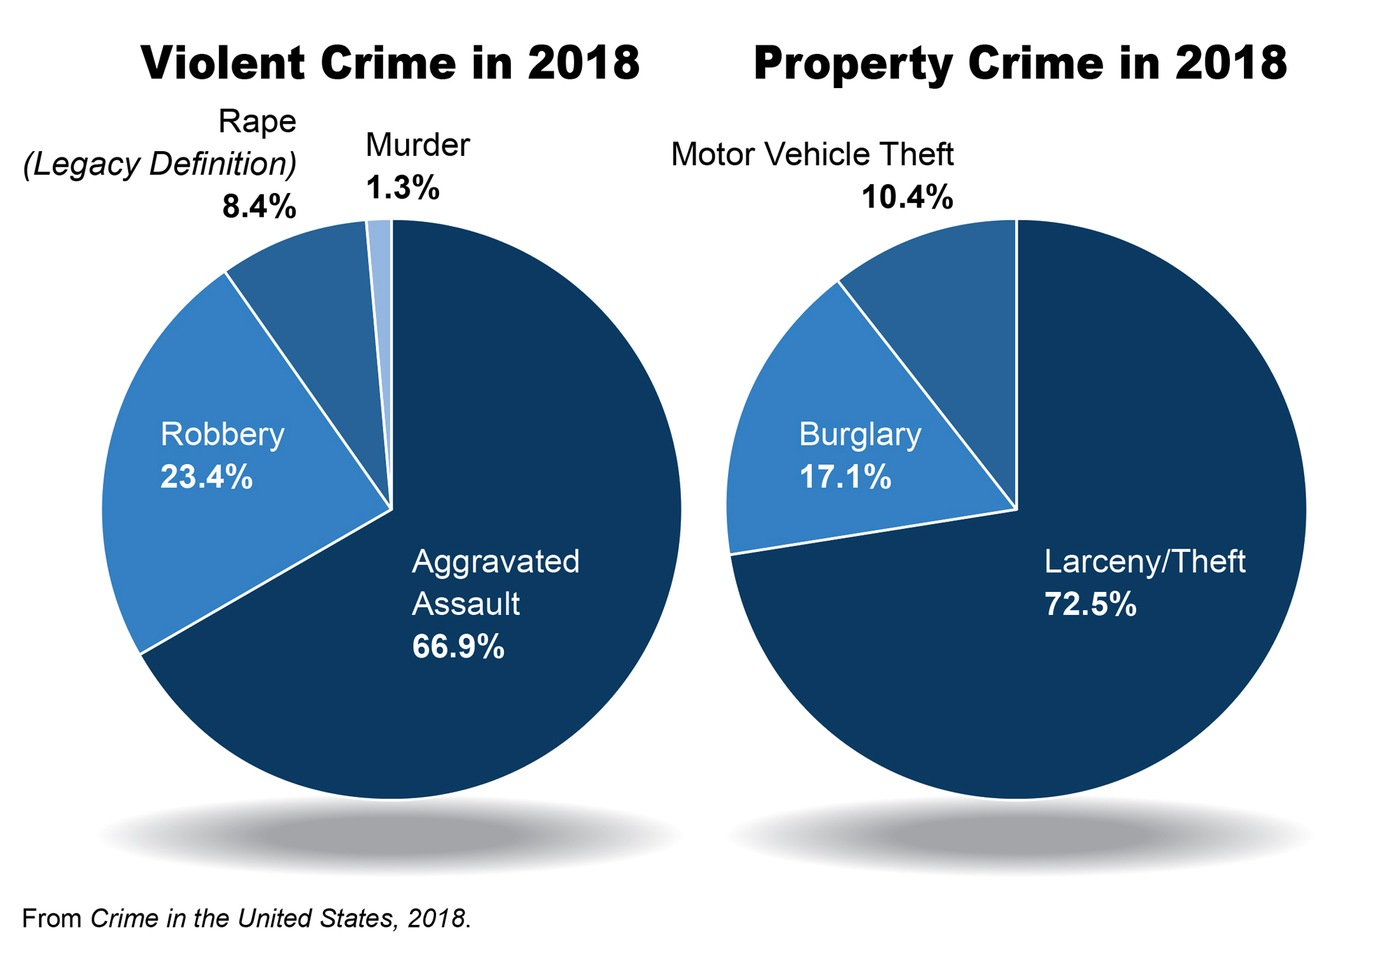 A pie chart breakdown of the types of violent and property crimes categorized in the Crime in the United States, 2018 report.